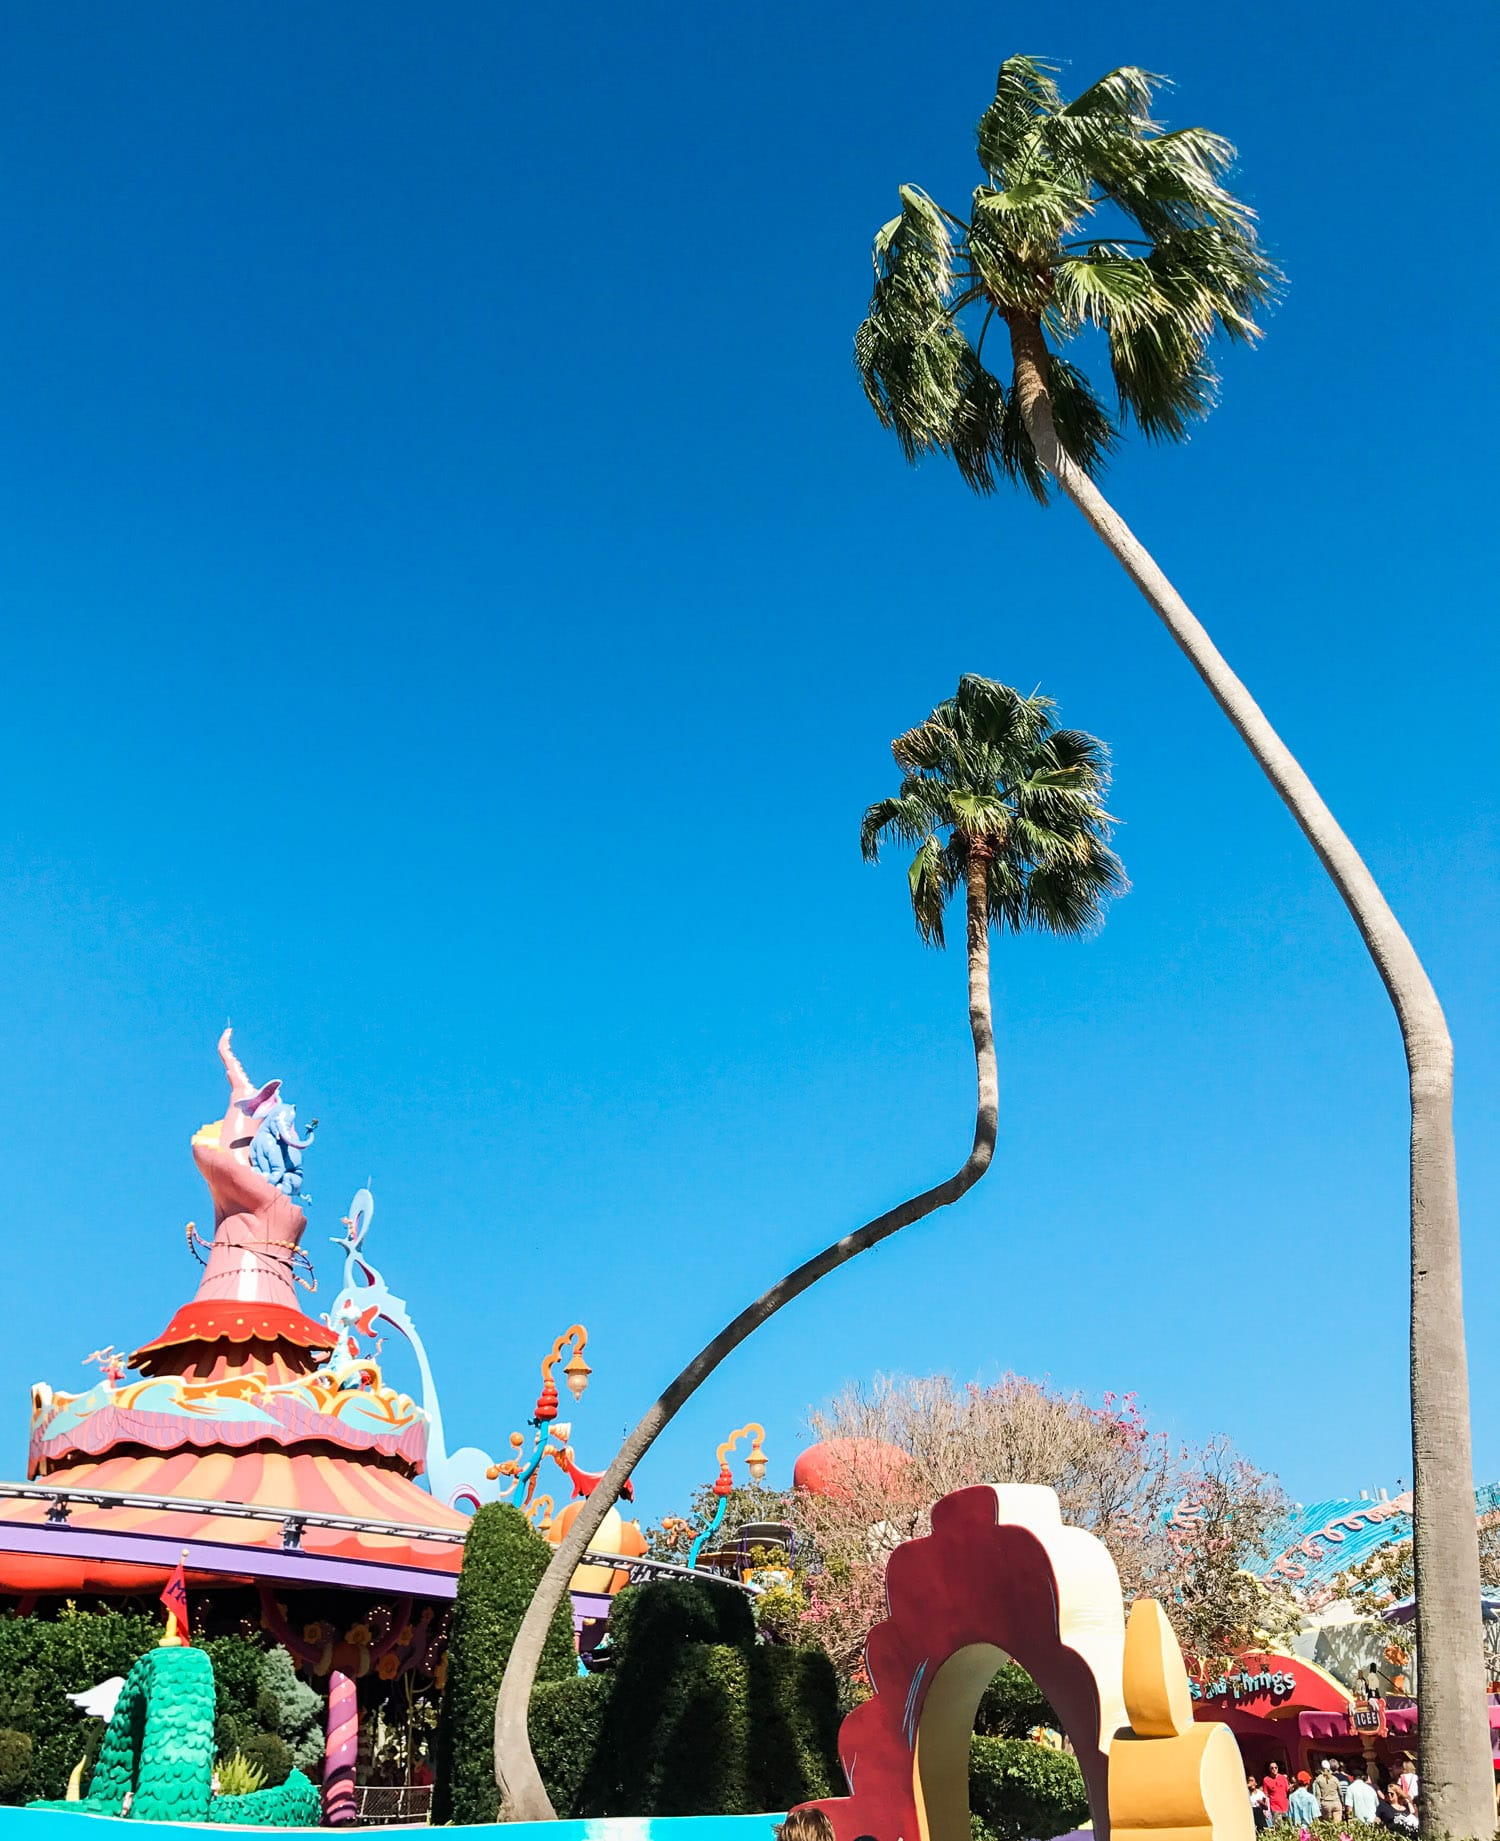 Dr. Seuss land at Universal Studios' Islands of Adventure theme park is just so magical! Planning a trip to Orlando? I've rounded up the top 10 things to do in Orlando, Florida, that are guaranteed to make your trip a success. Whether you're moving to Orlando or just headed in on vacation, you will LOVE this list of fun activities in Orlando by Florida travel blogger Ashley Brooke Nicholas #CORTatHome sponsored by CORT Furniture | affordable travel tips, orlando vacation tips, vacation tips,Flor